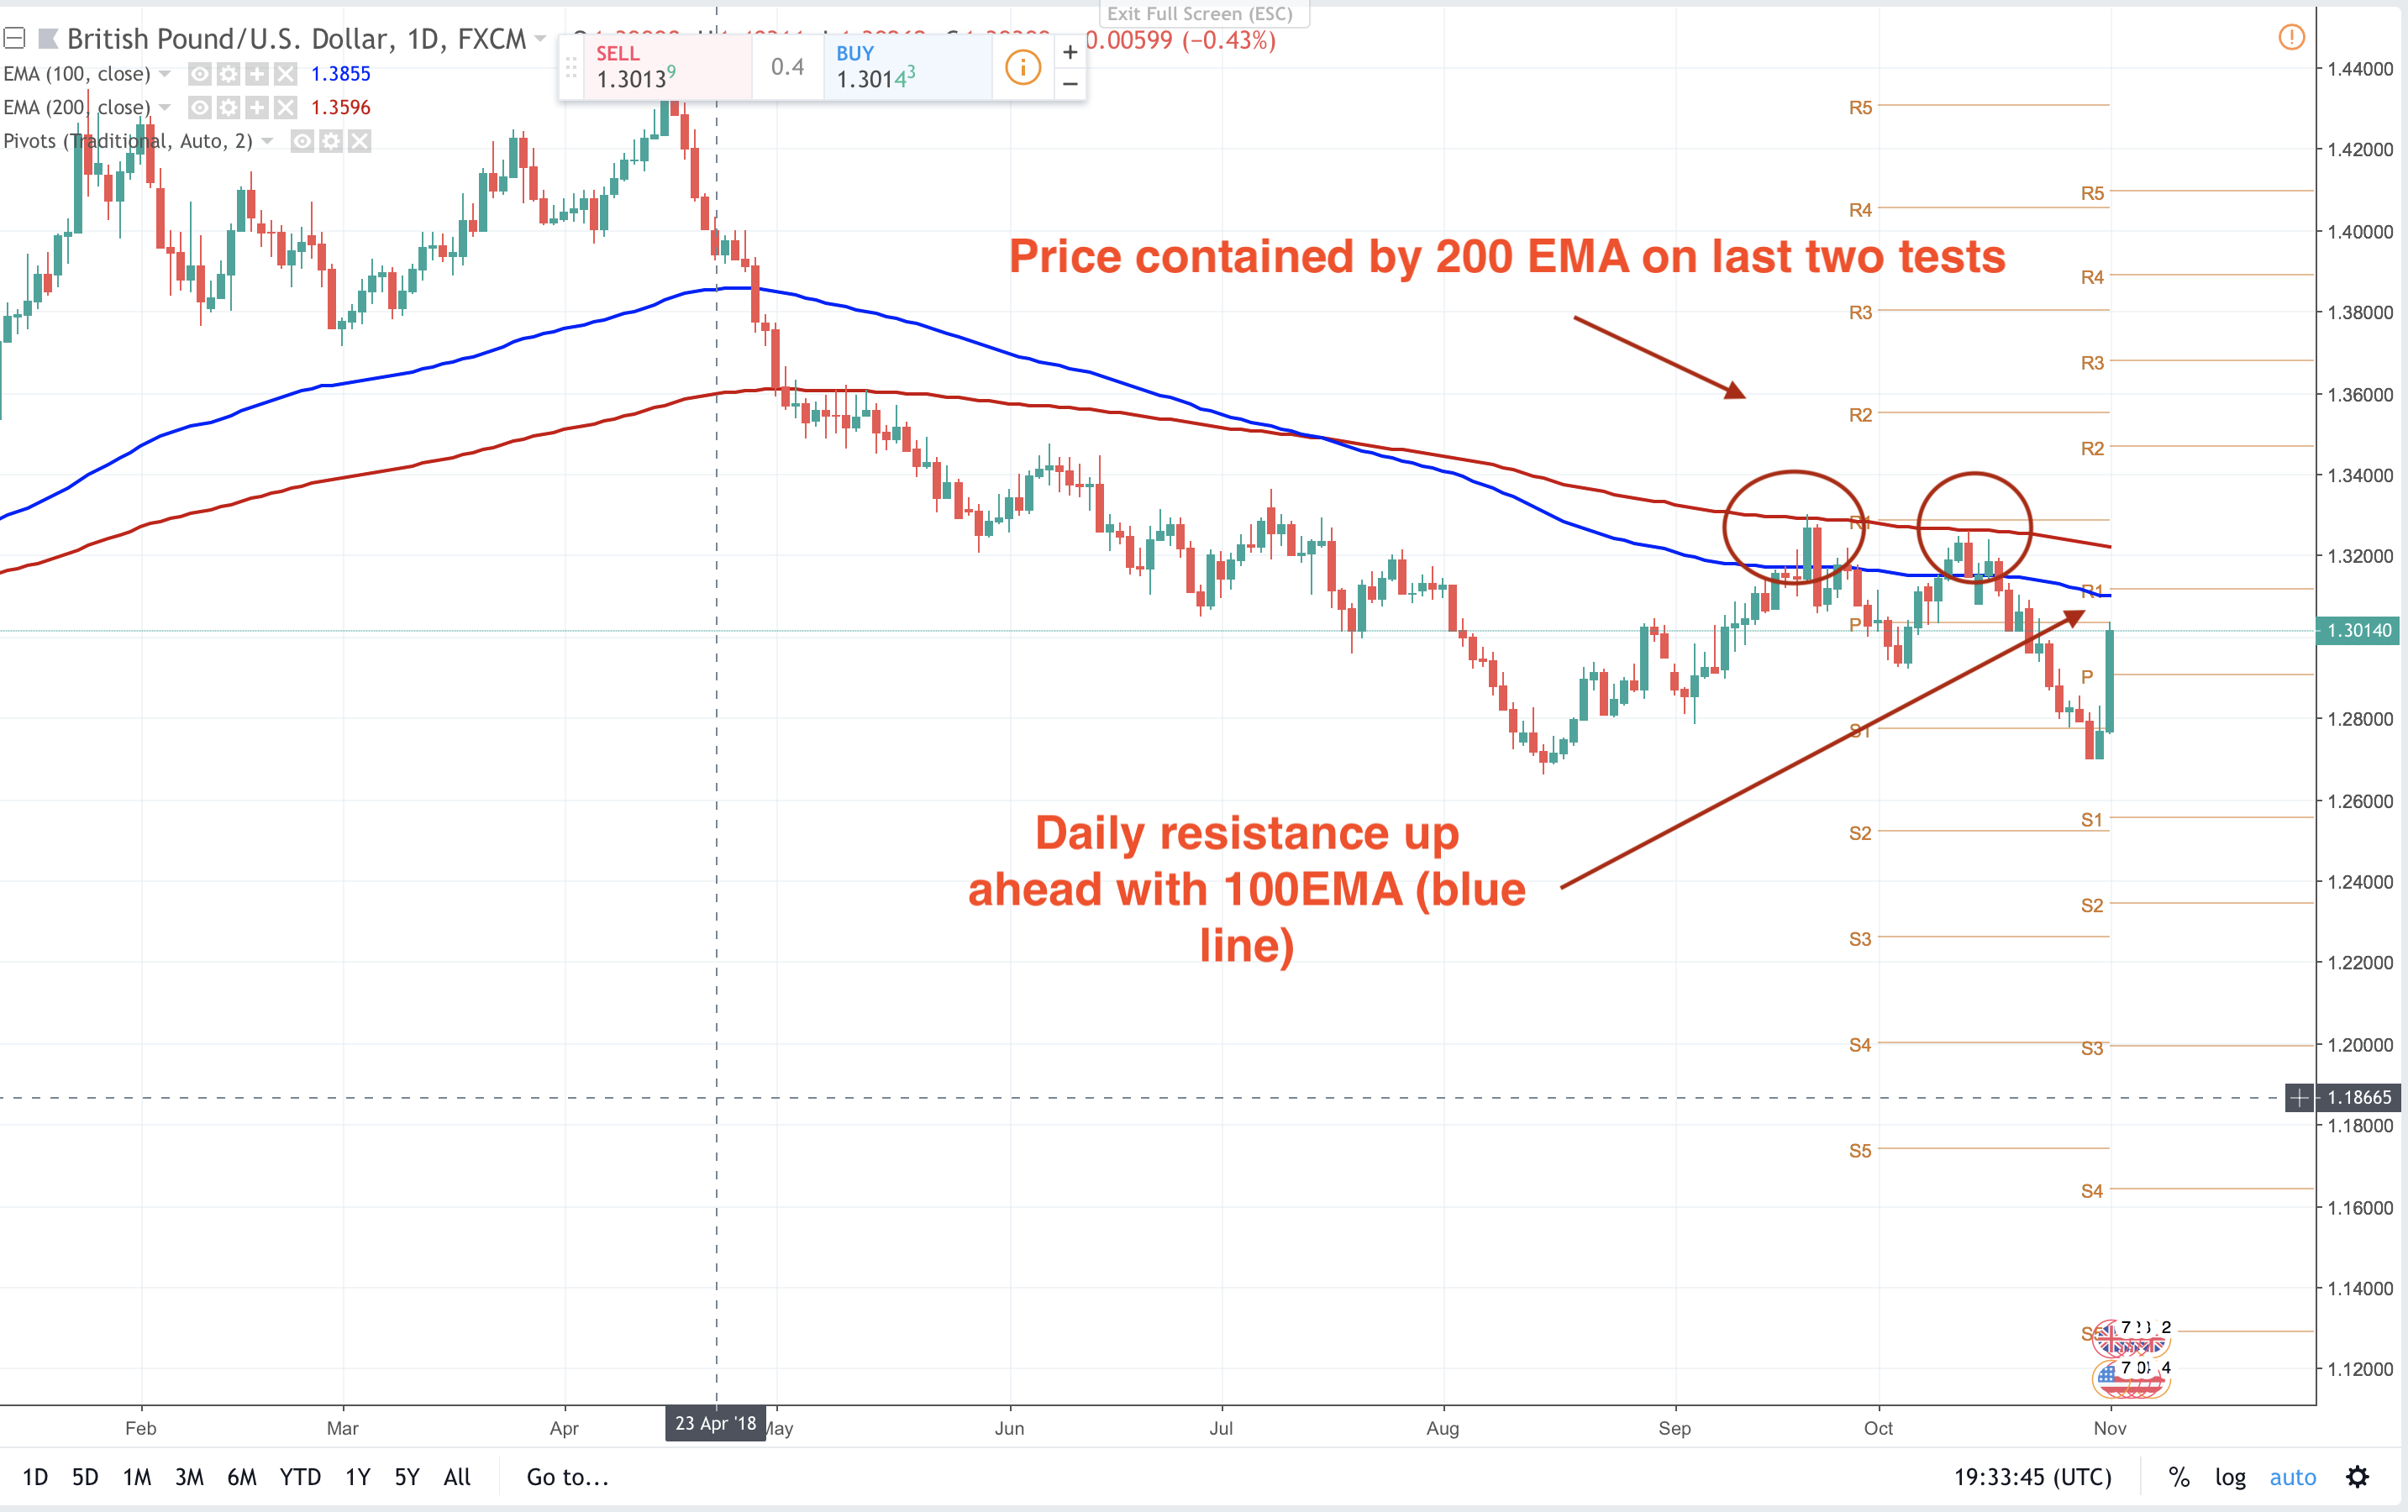 Here we go again in the GBP cycle